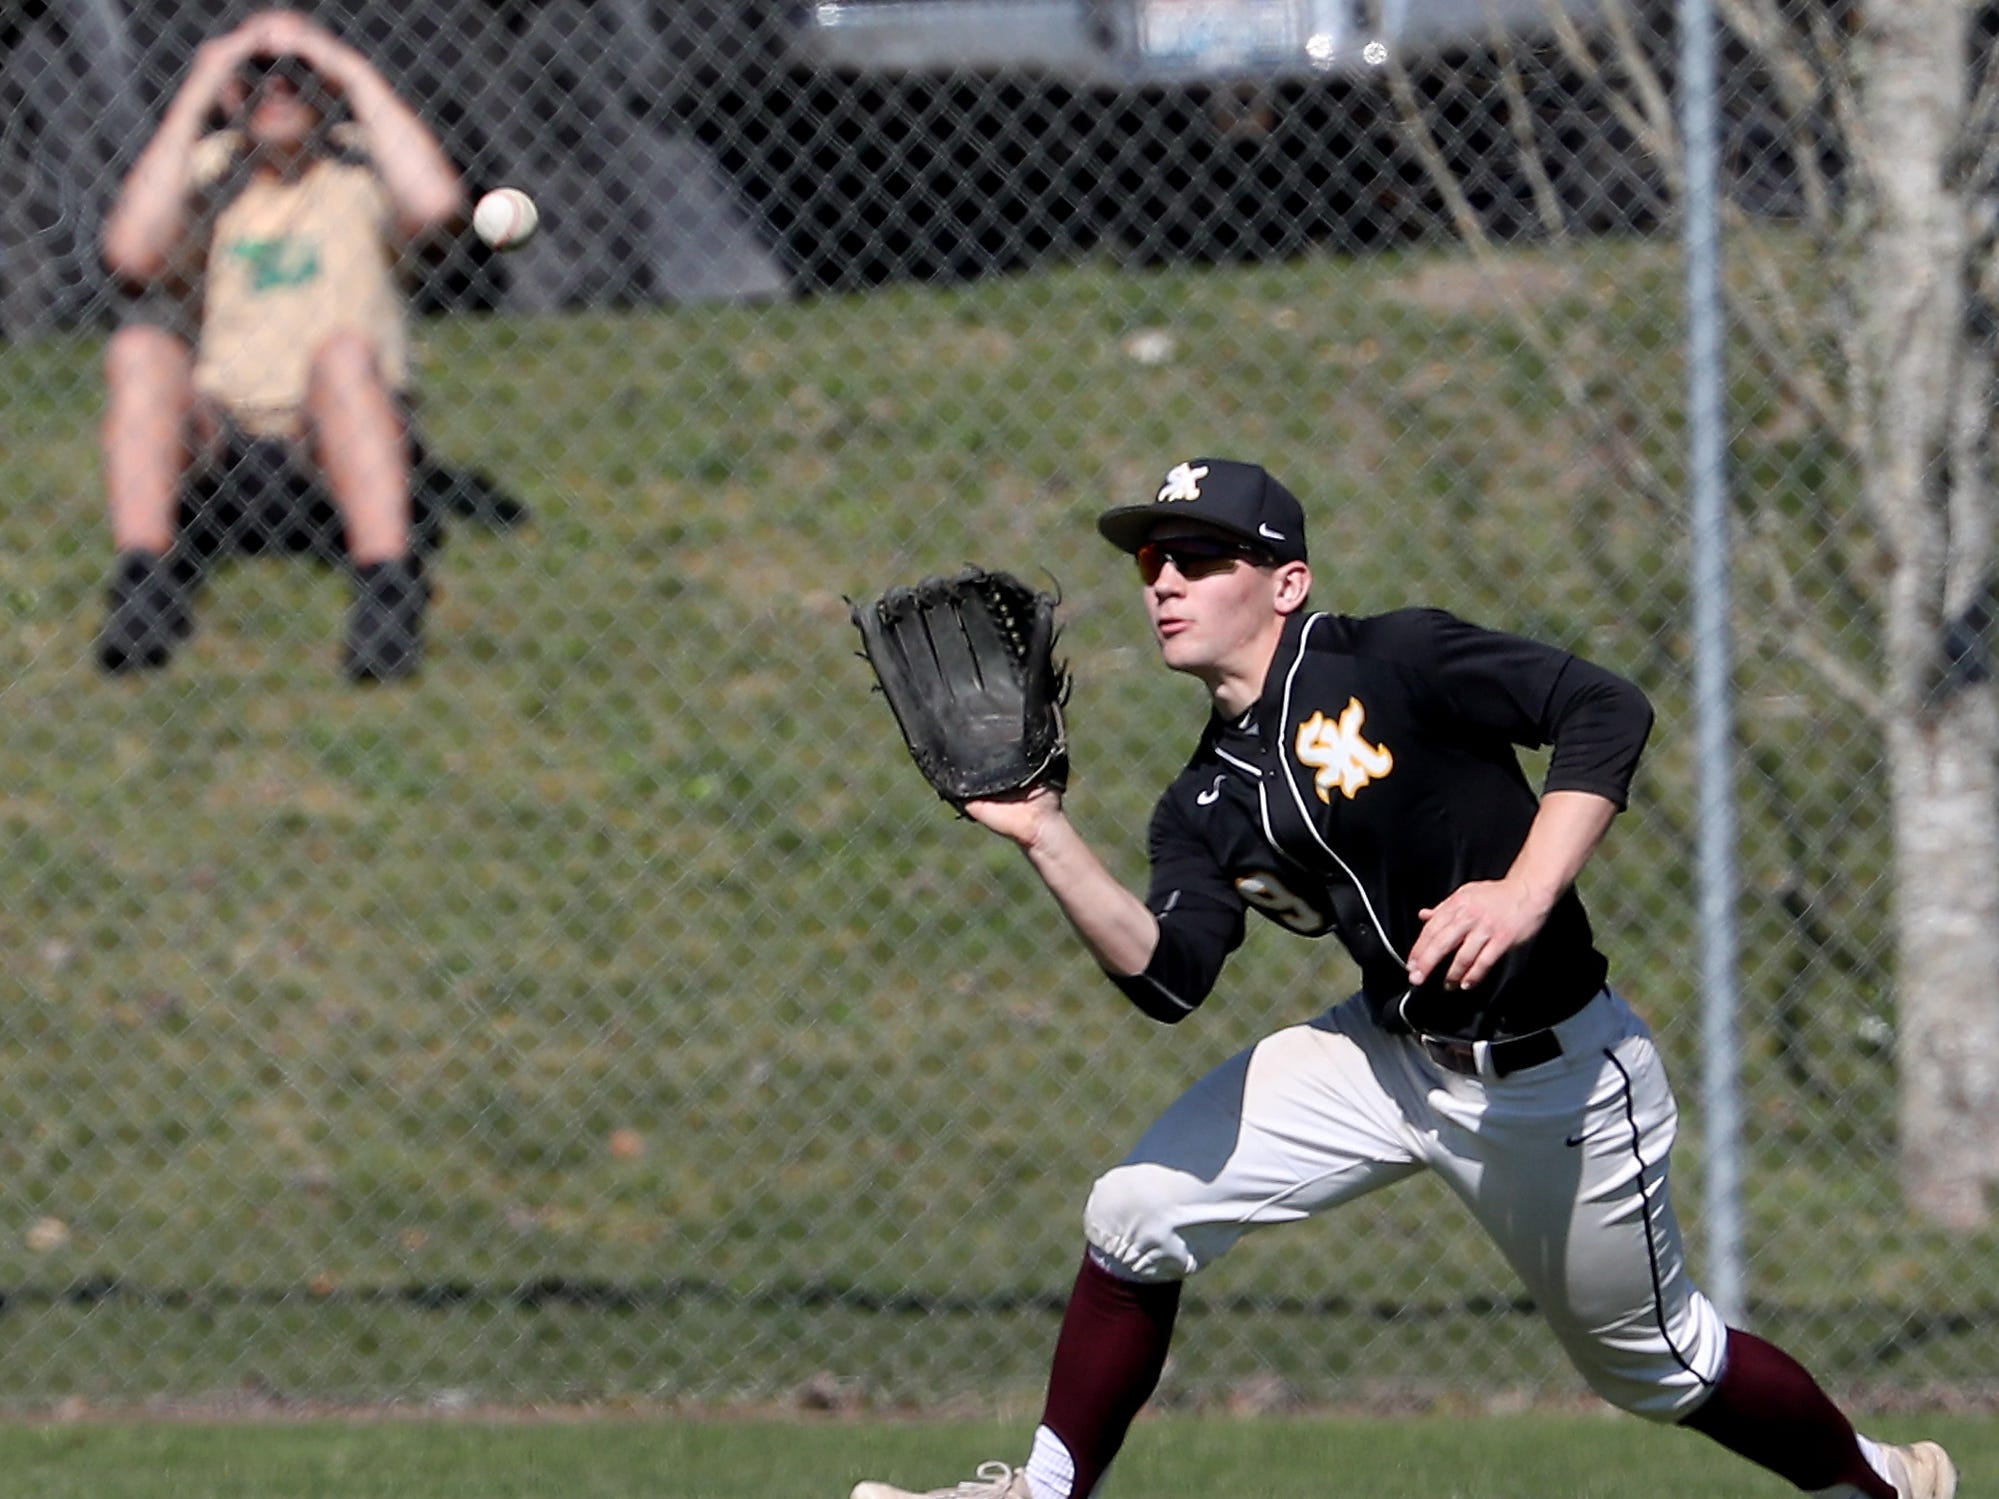 South Kitsap's Sam Canton makes a catch in the outfield during their game against Central Kitsap on Saturday, March 30, 2019.